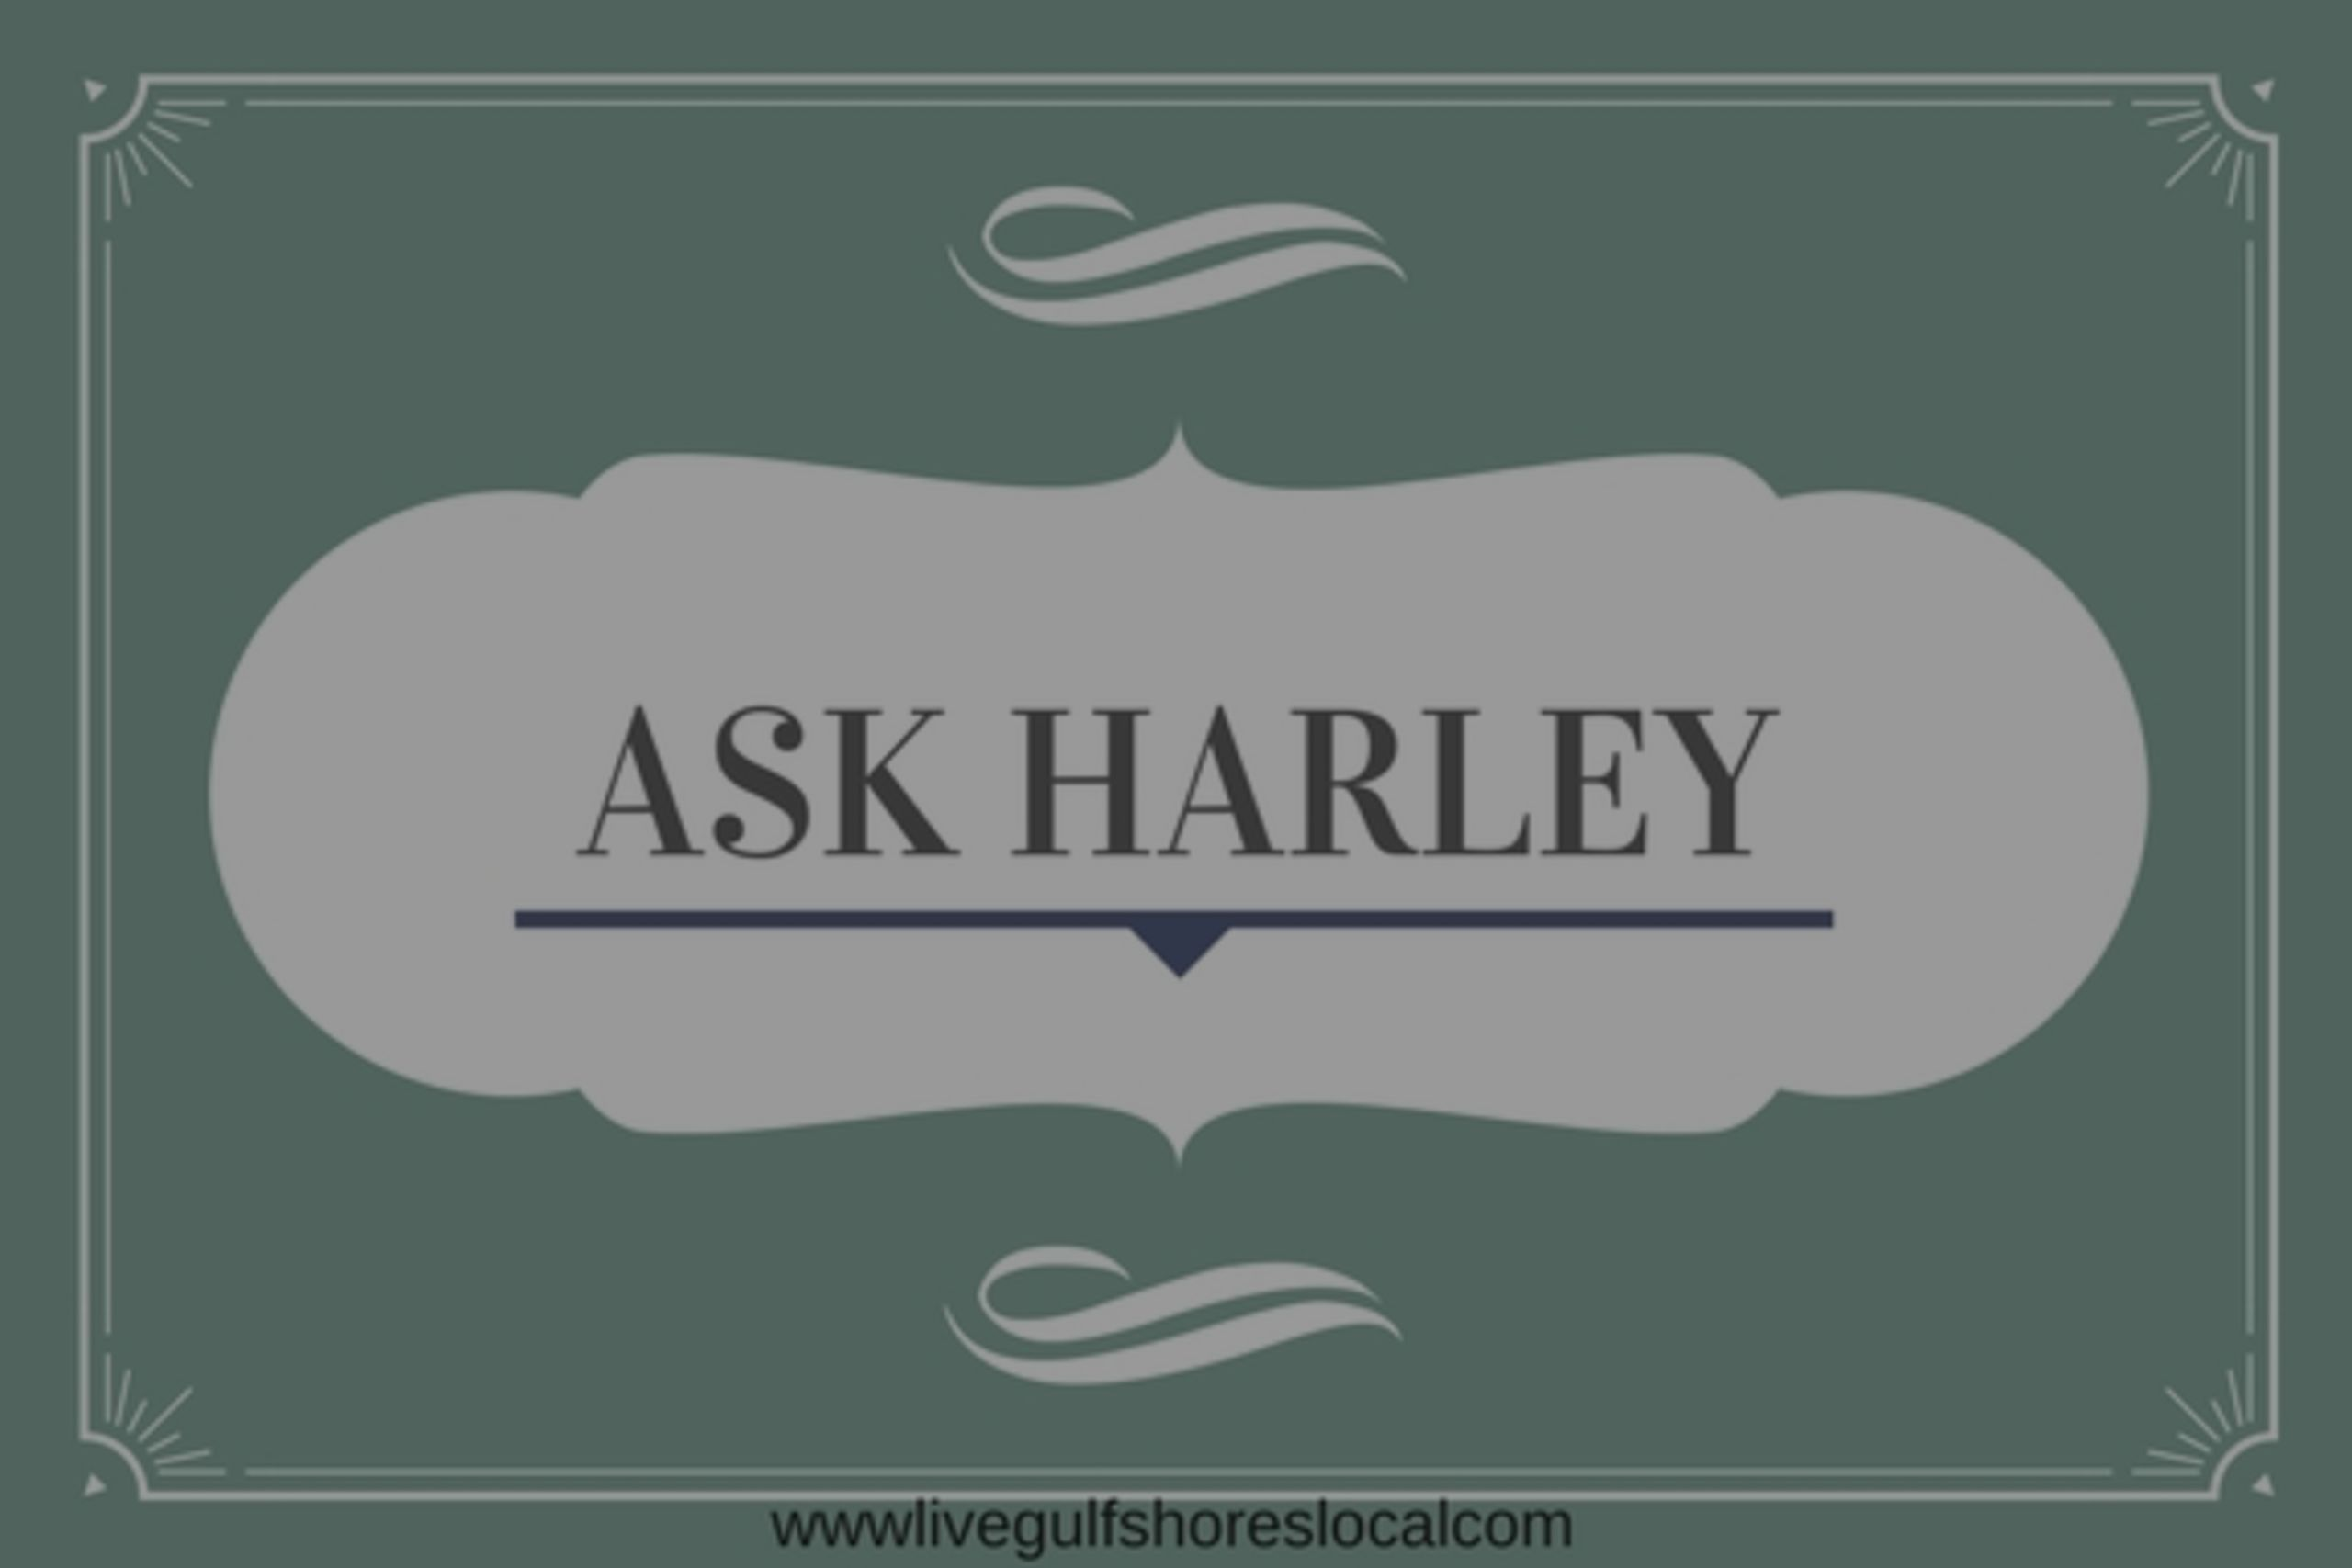 Ask Harley: Are Rates That Important?